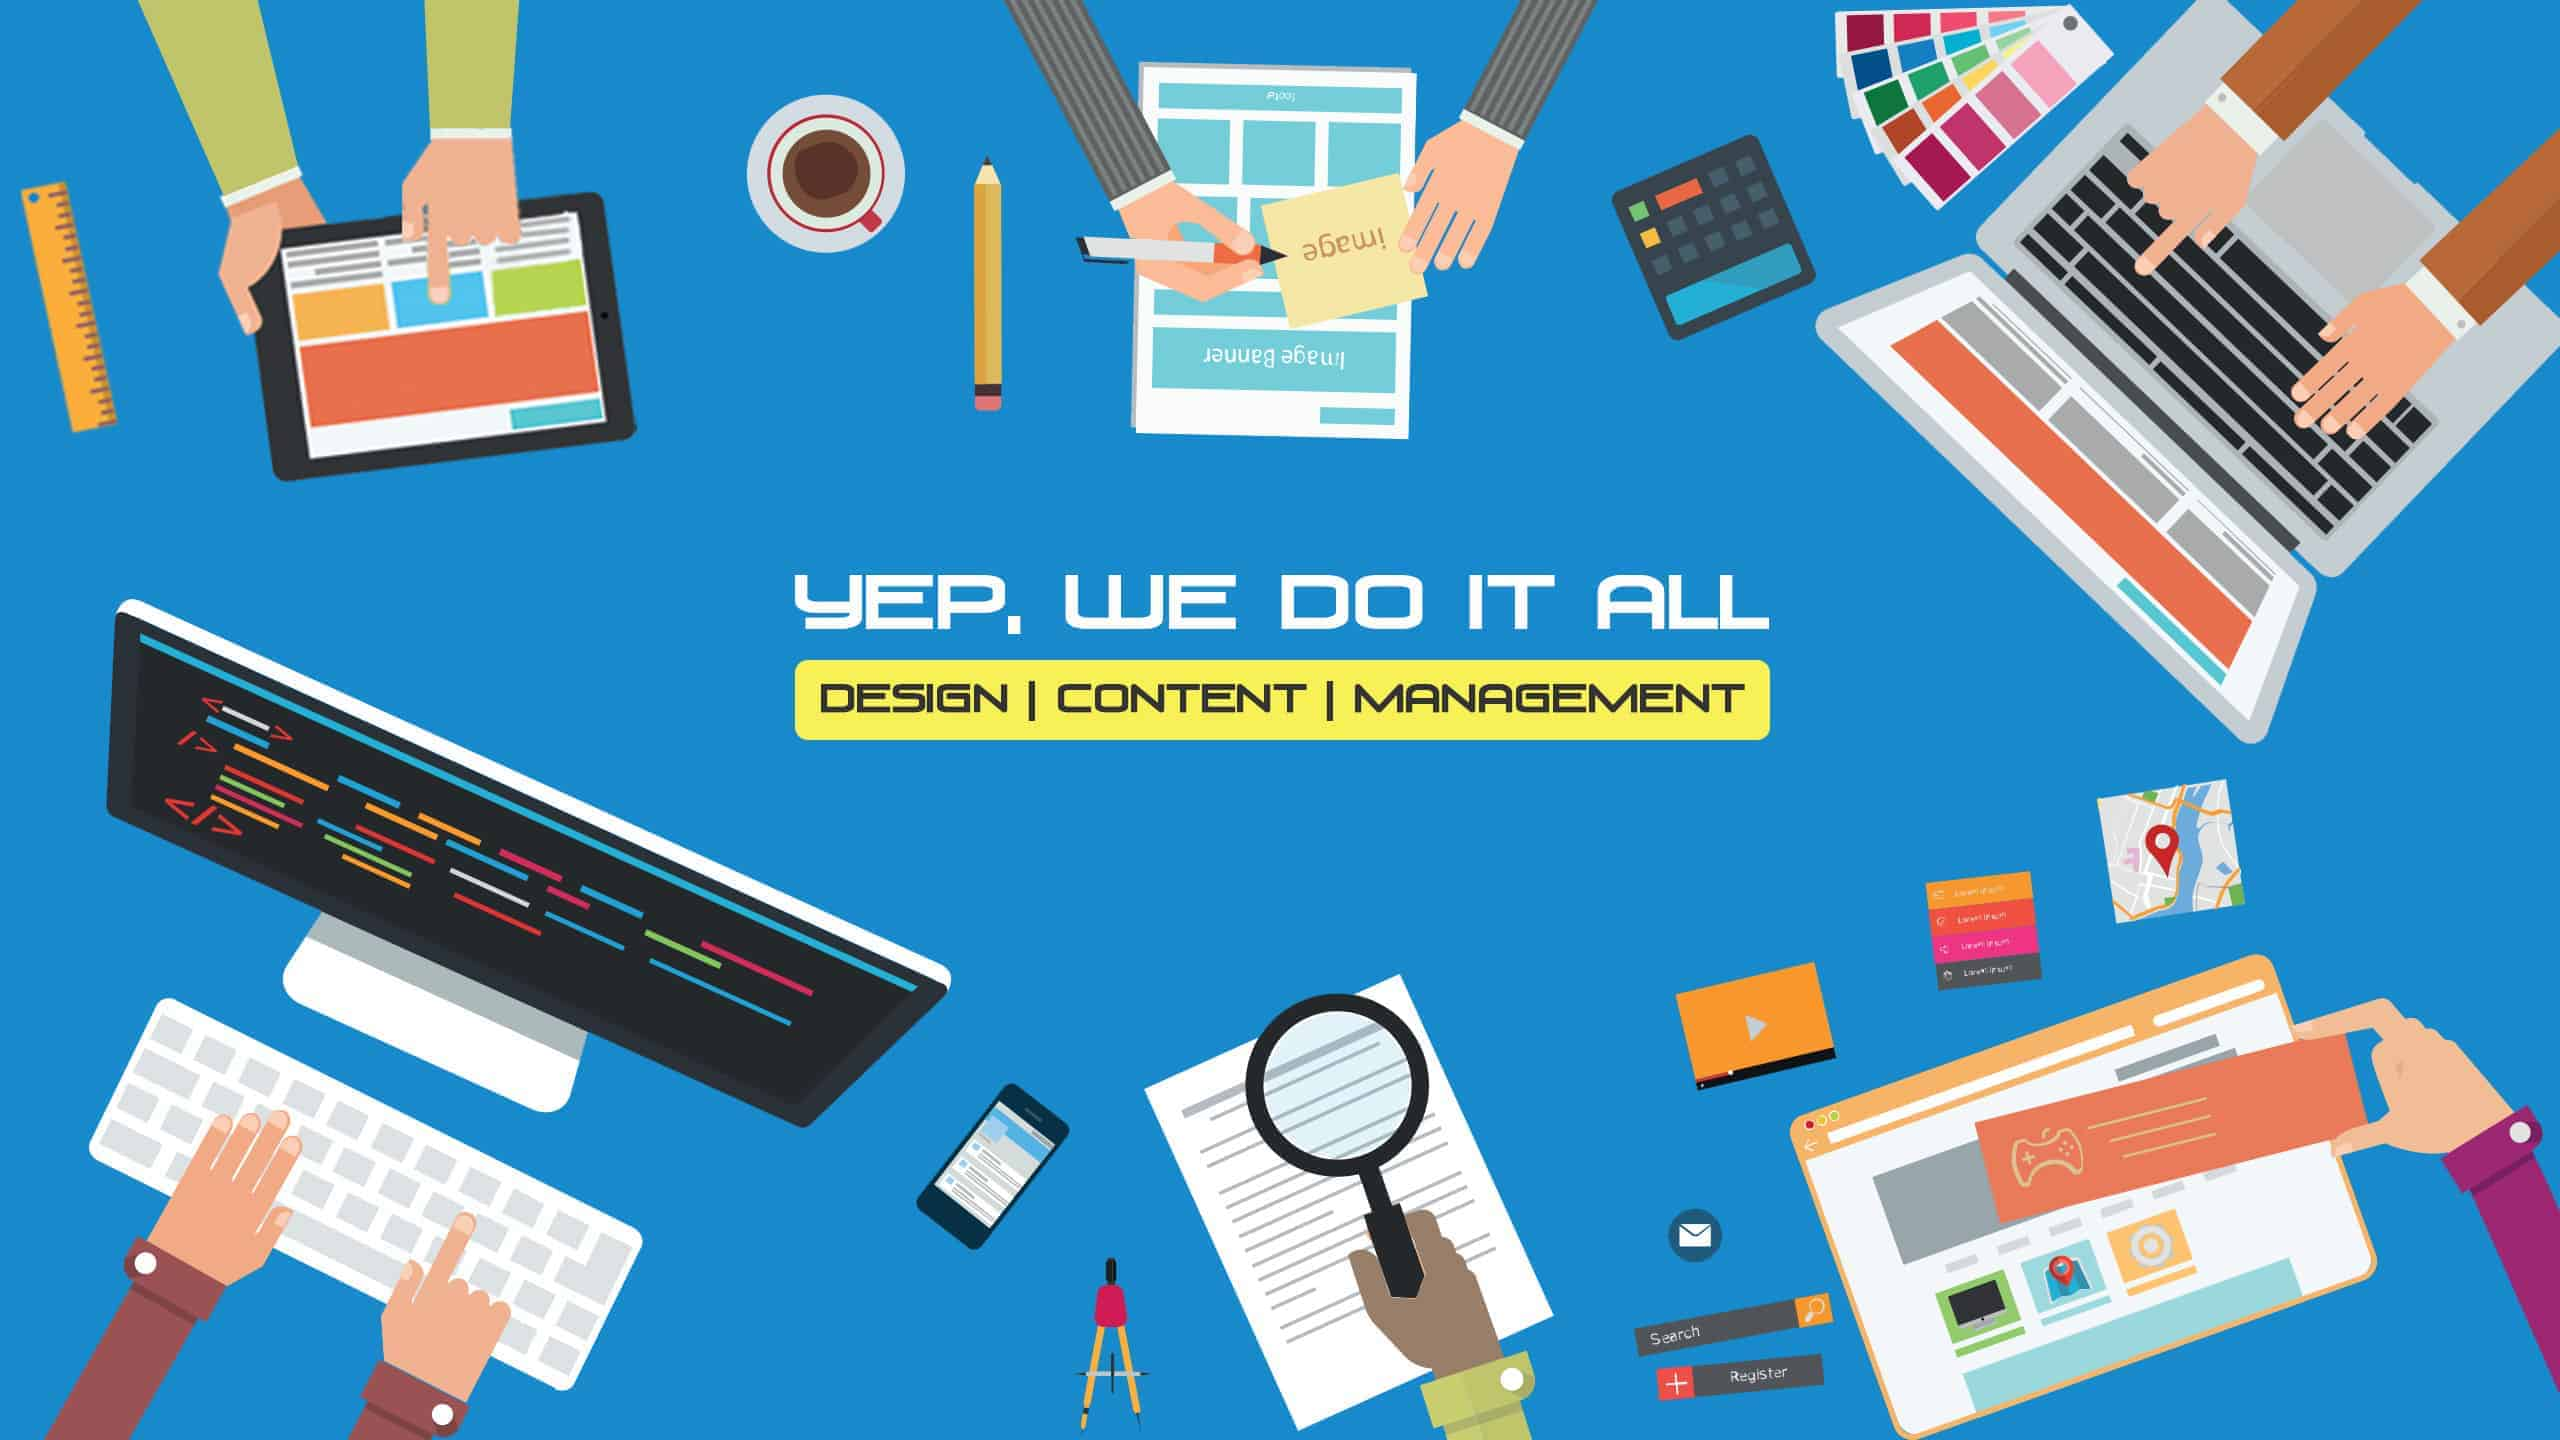 Web Design, Content Creation and Website Management